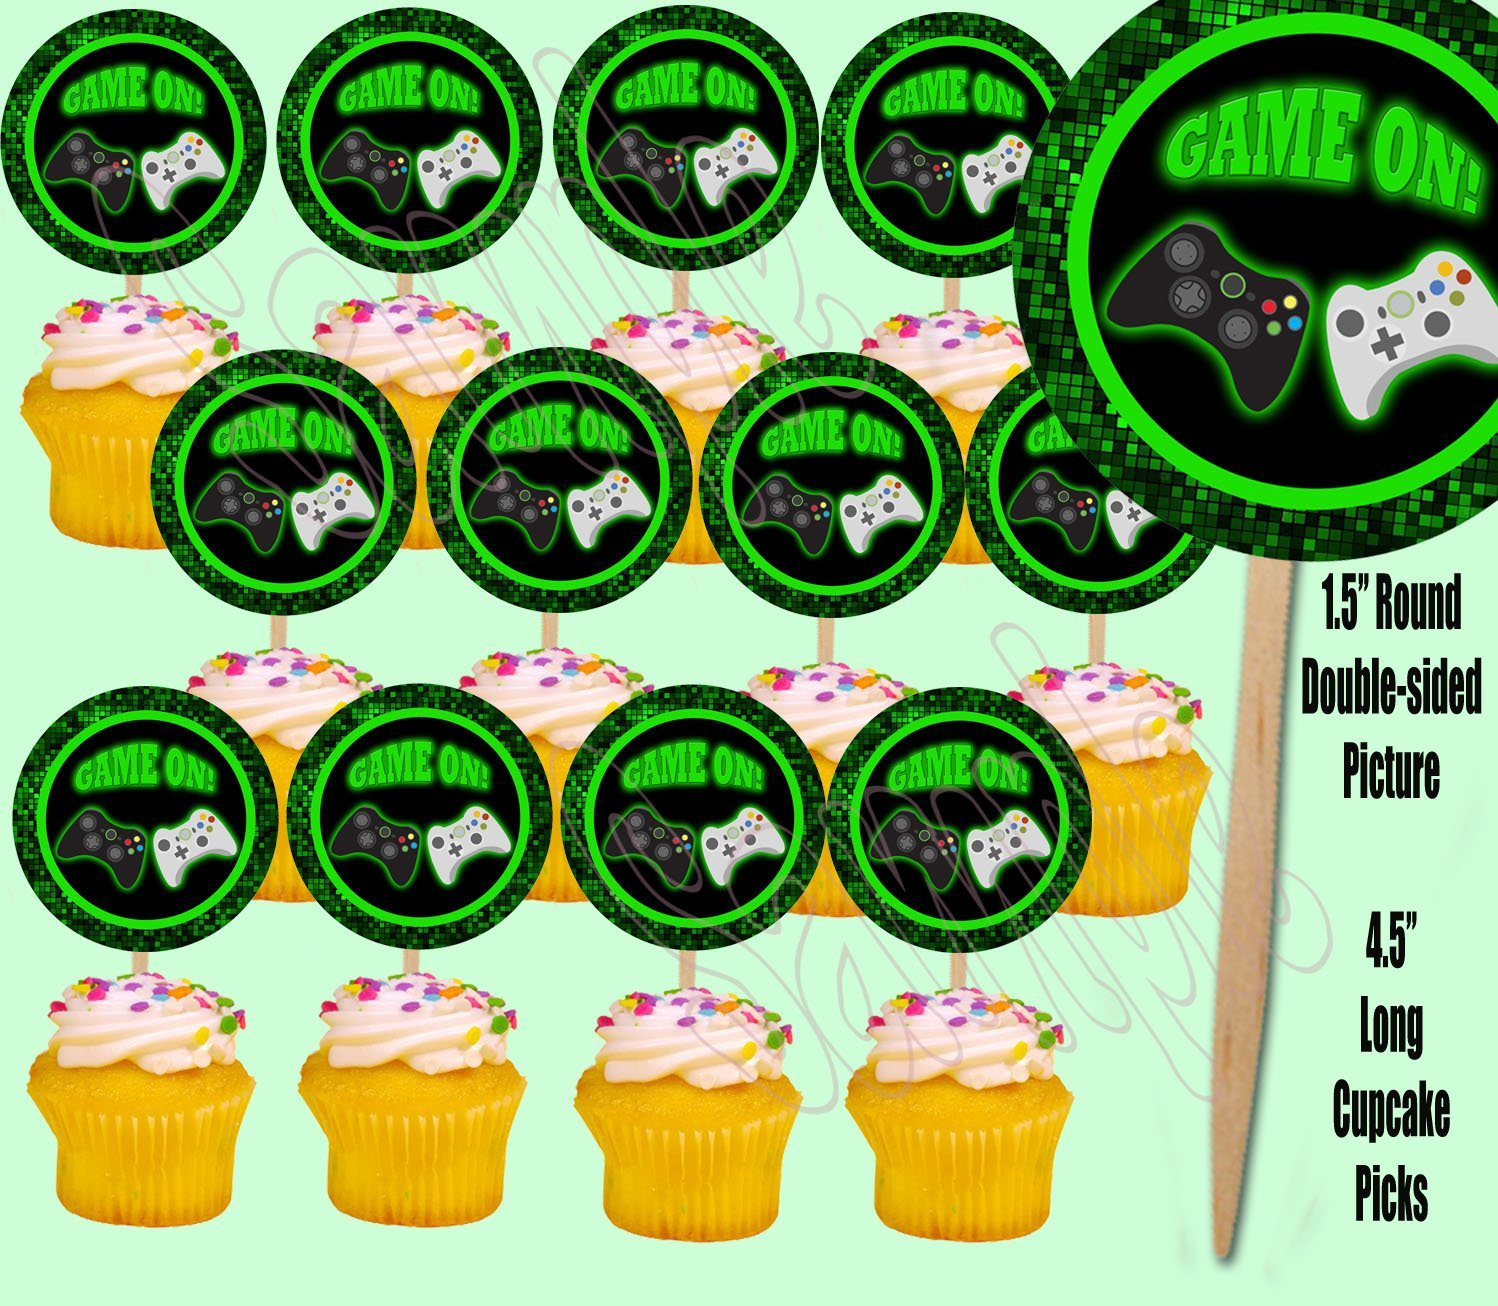 Game On Video Game Controller Cupcake Picks Double-sided Images Cake Topper -12, Video Game Truck Party Pixel Party by Party Over Here